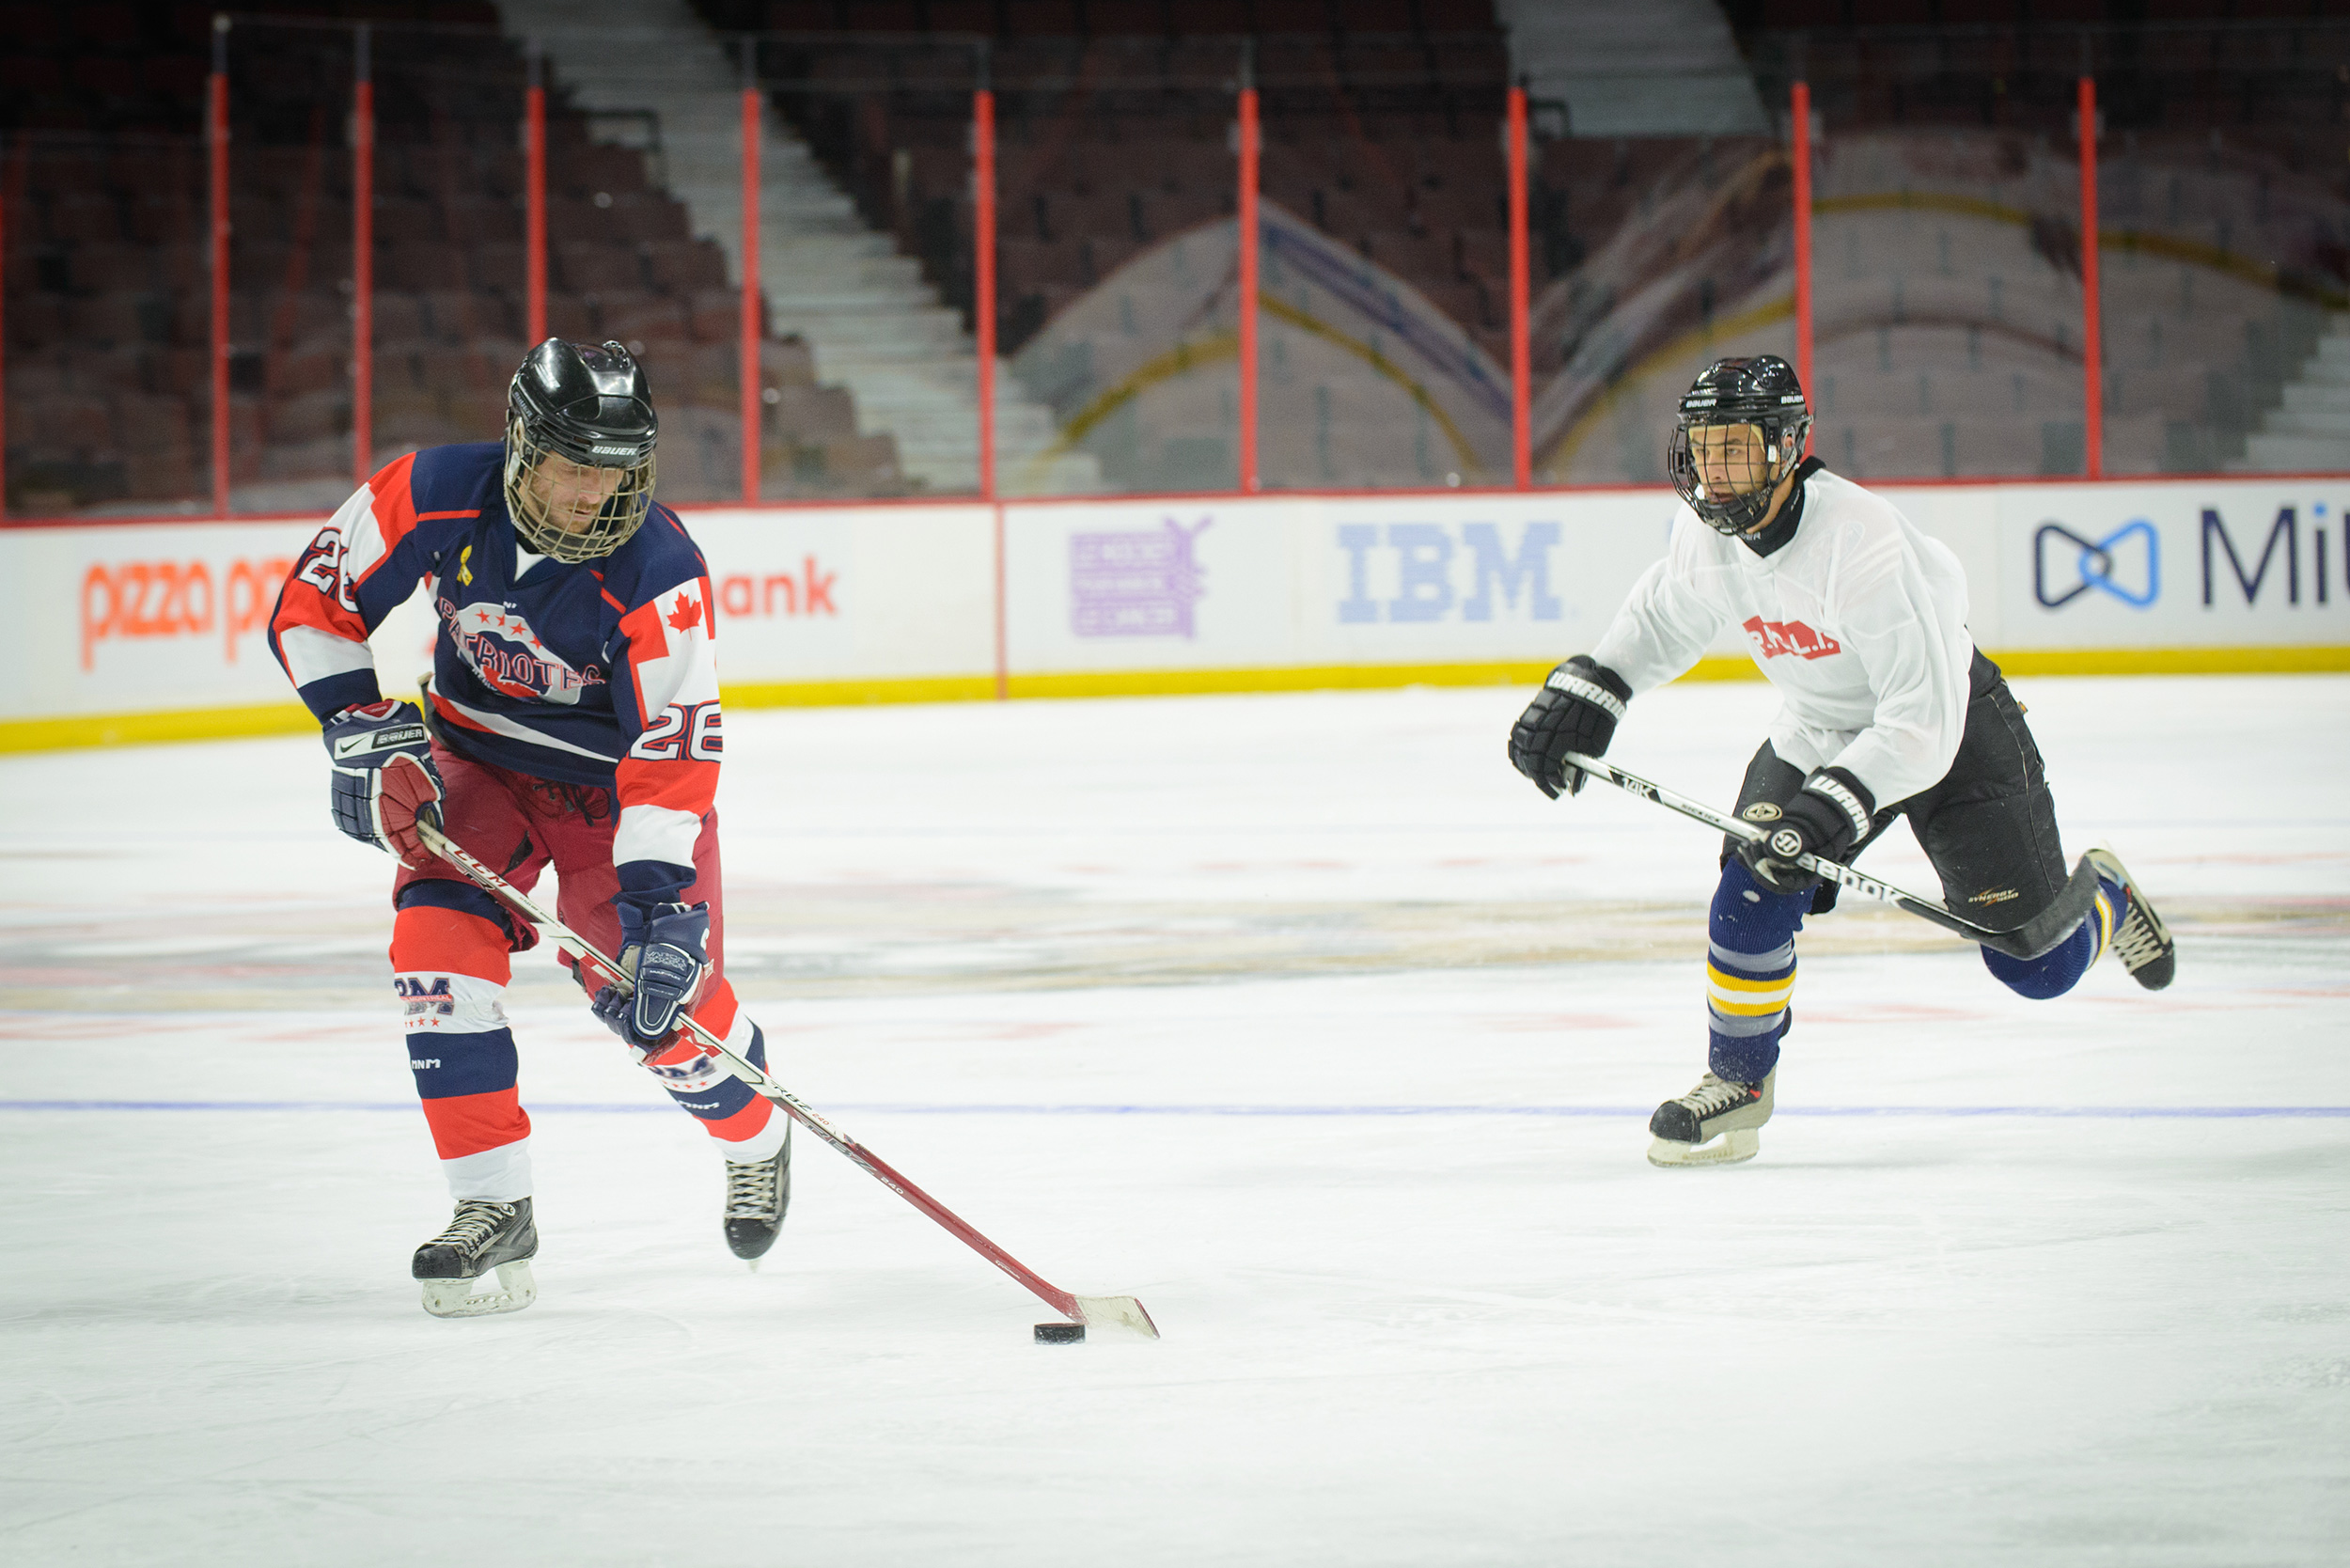 Members of the Princess Patricia's Canadian Light Infantry and the Royal 22e Régiment compete in the 4th annual Imjin Classic hockey game at the Canadian Tire Centre in Ottawa, Ontario on November 5, 2016. The game is co-hosted by the Embassy of the Republic of Korea and the Canadian Army. It is in honour of Canadians who served in the Korean War and played Canada's favourite winter sport on the frozen Imjin River. Photo by: Daniel Merrell, Canadian Forces Support Unit (Ottawa). ©2016 DND/MDN Canada.